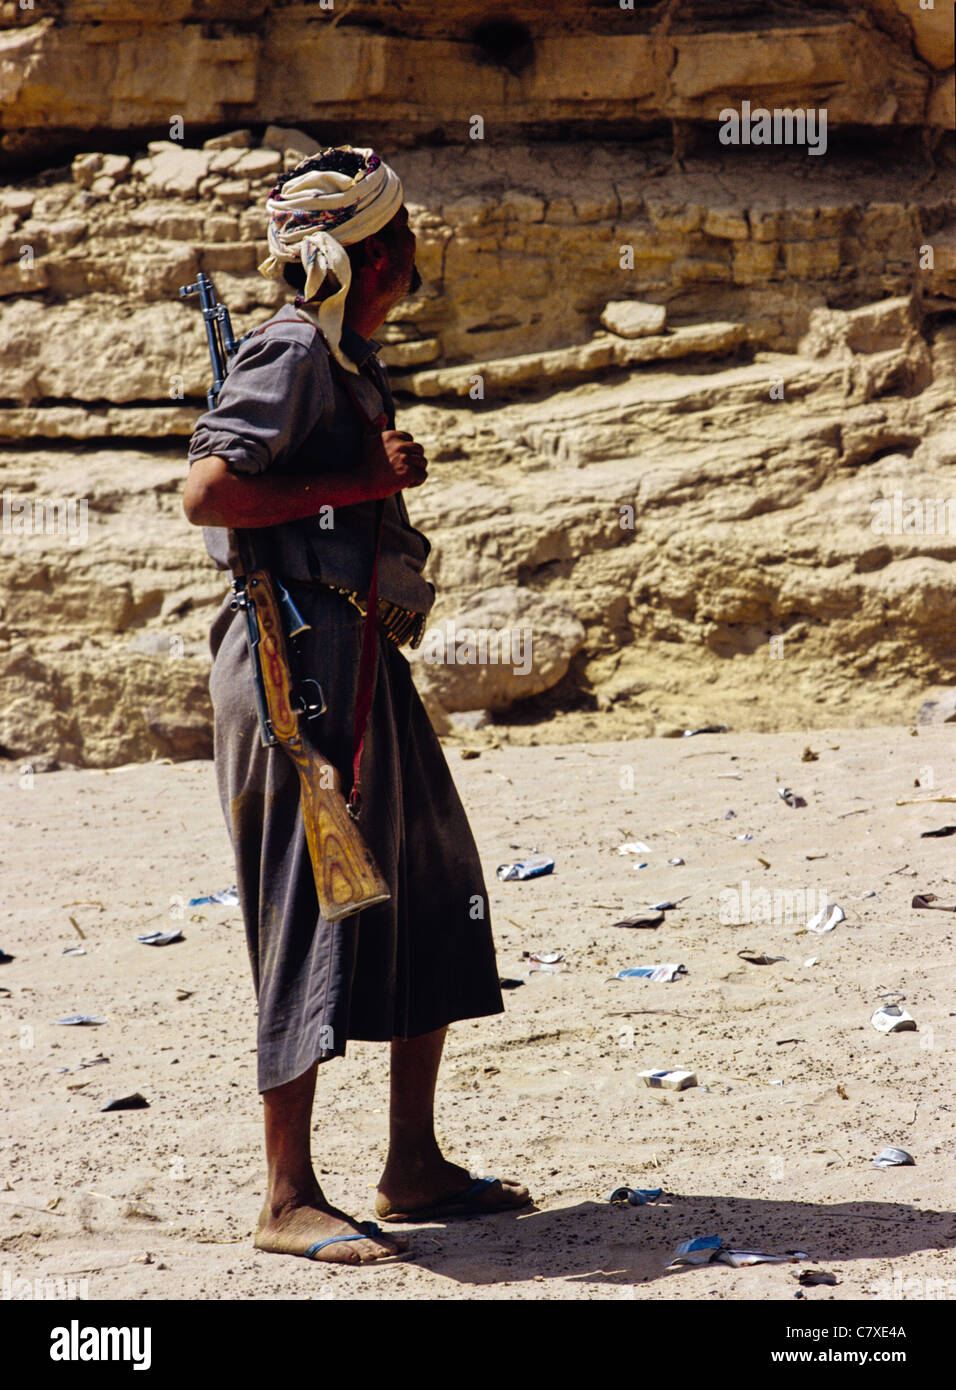 Yemeni man carrying a rifle over his shoulder near the ancient city of Marib, Yemen - Stock Image